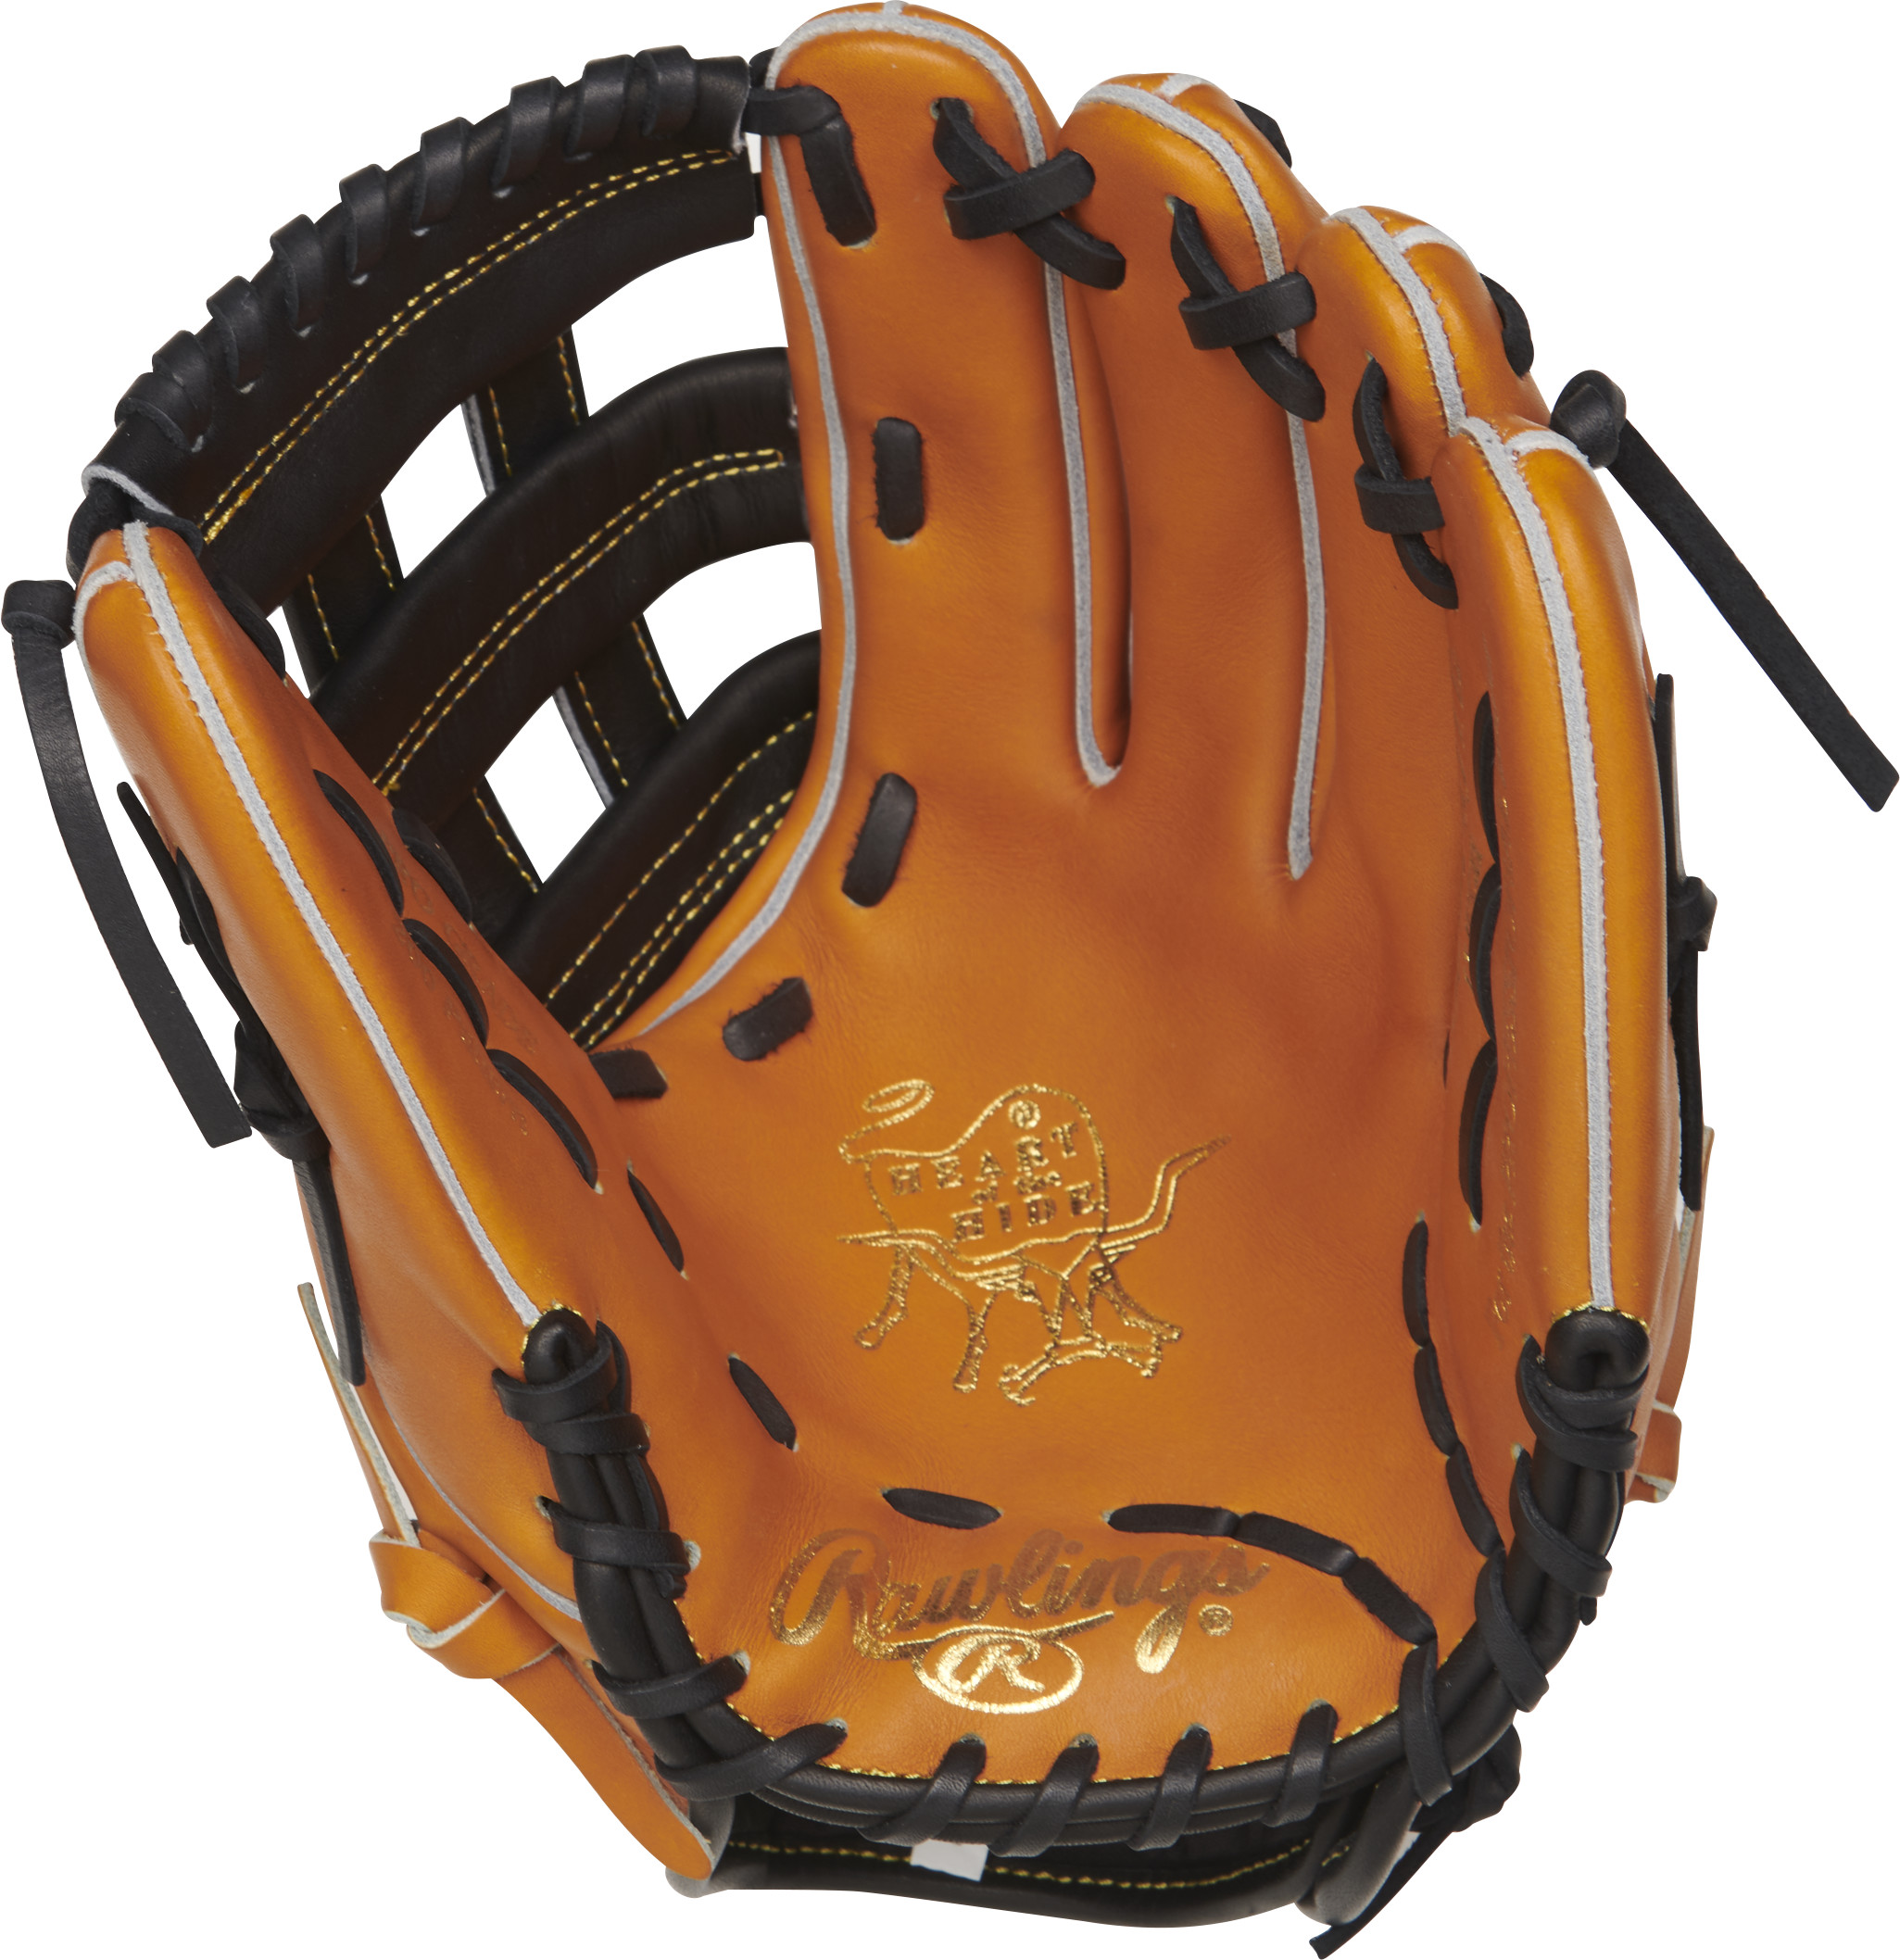 http://www.bestbatdeals.com/images/gloves/rawlings/PRO206-6JTB-1.jpg